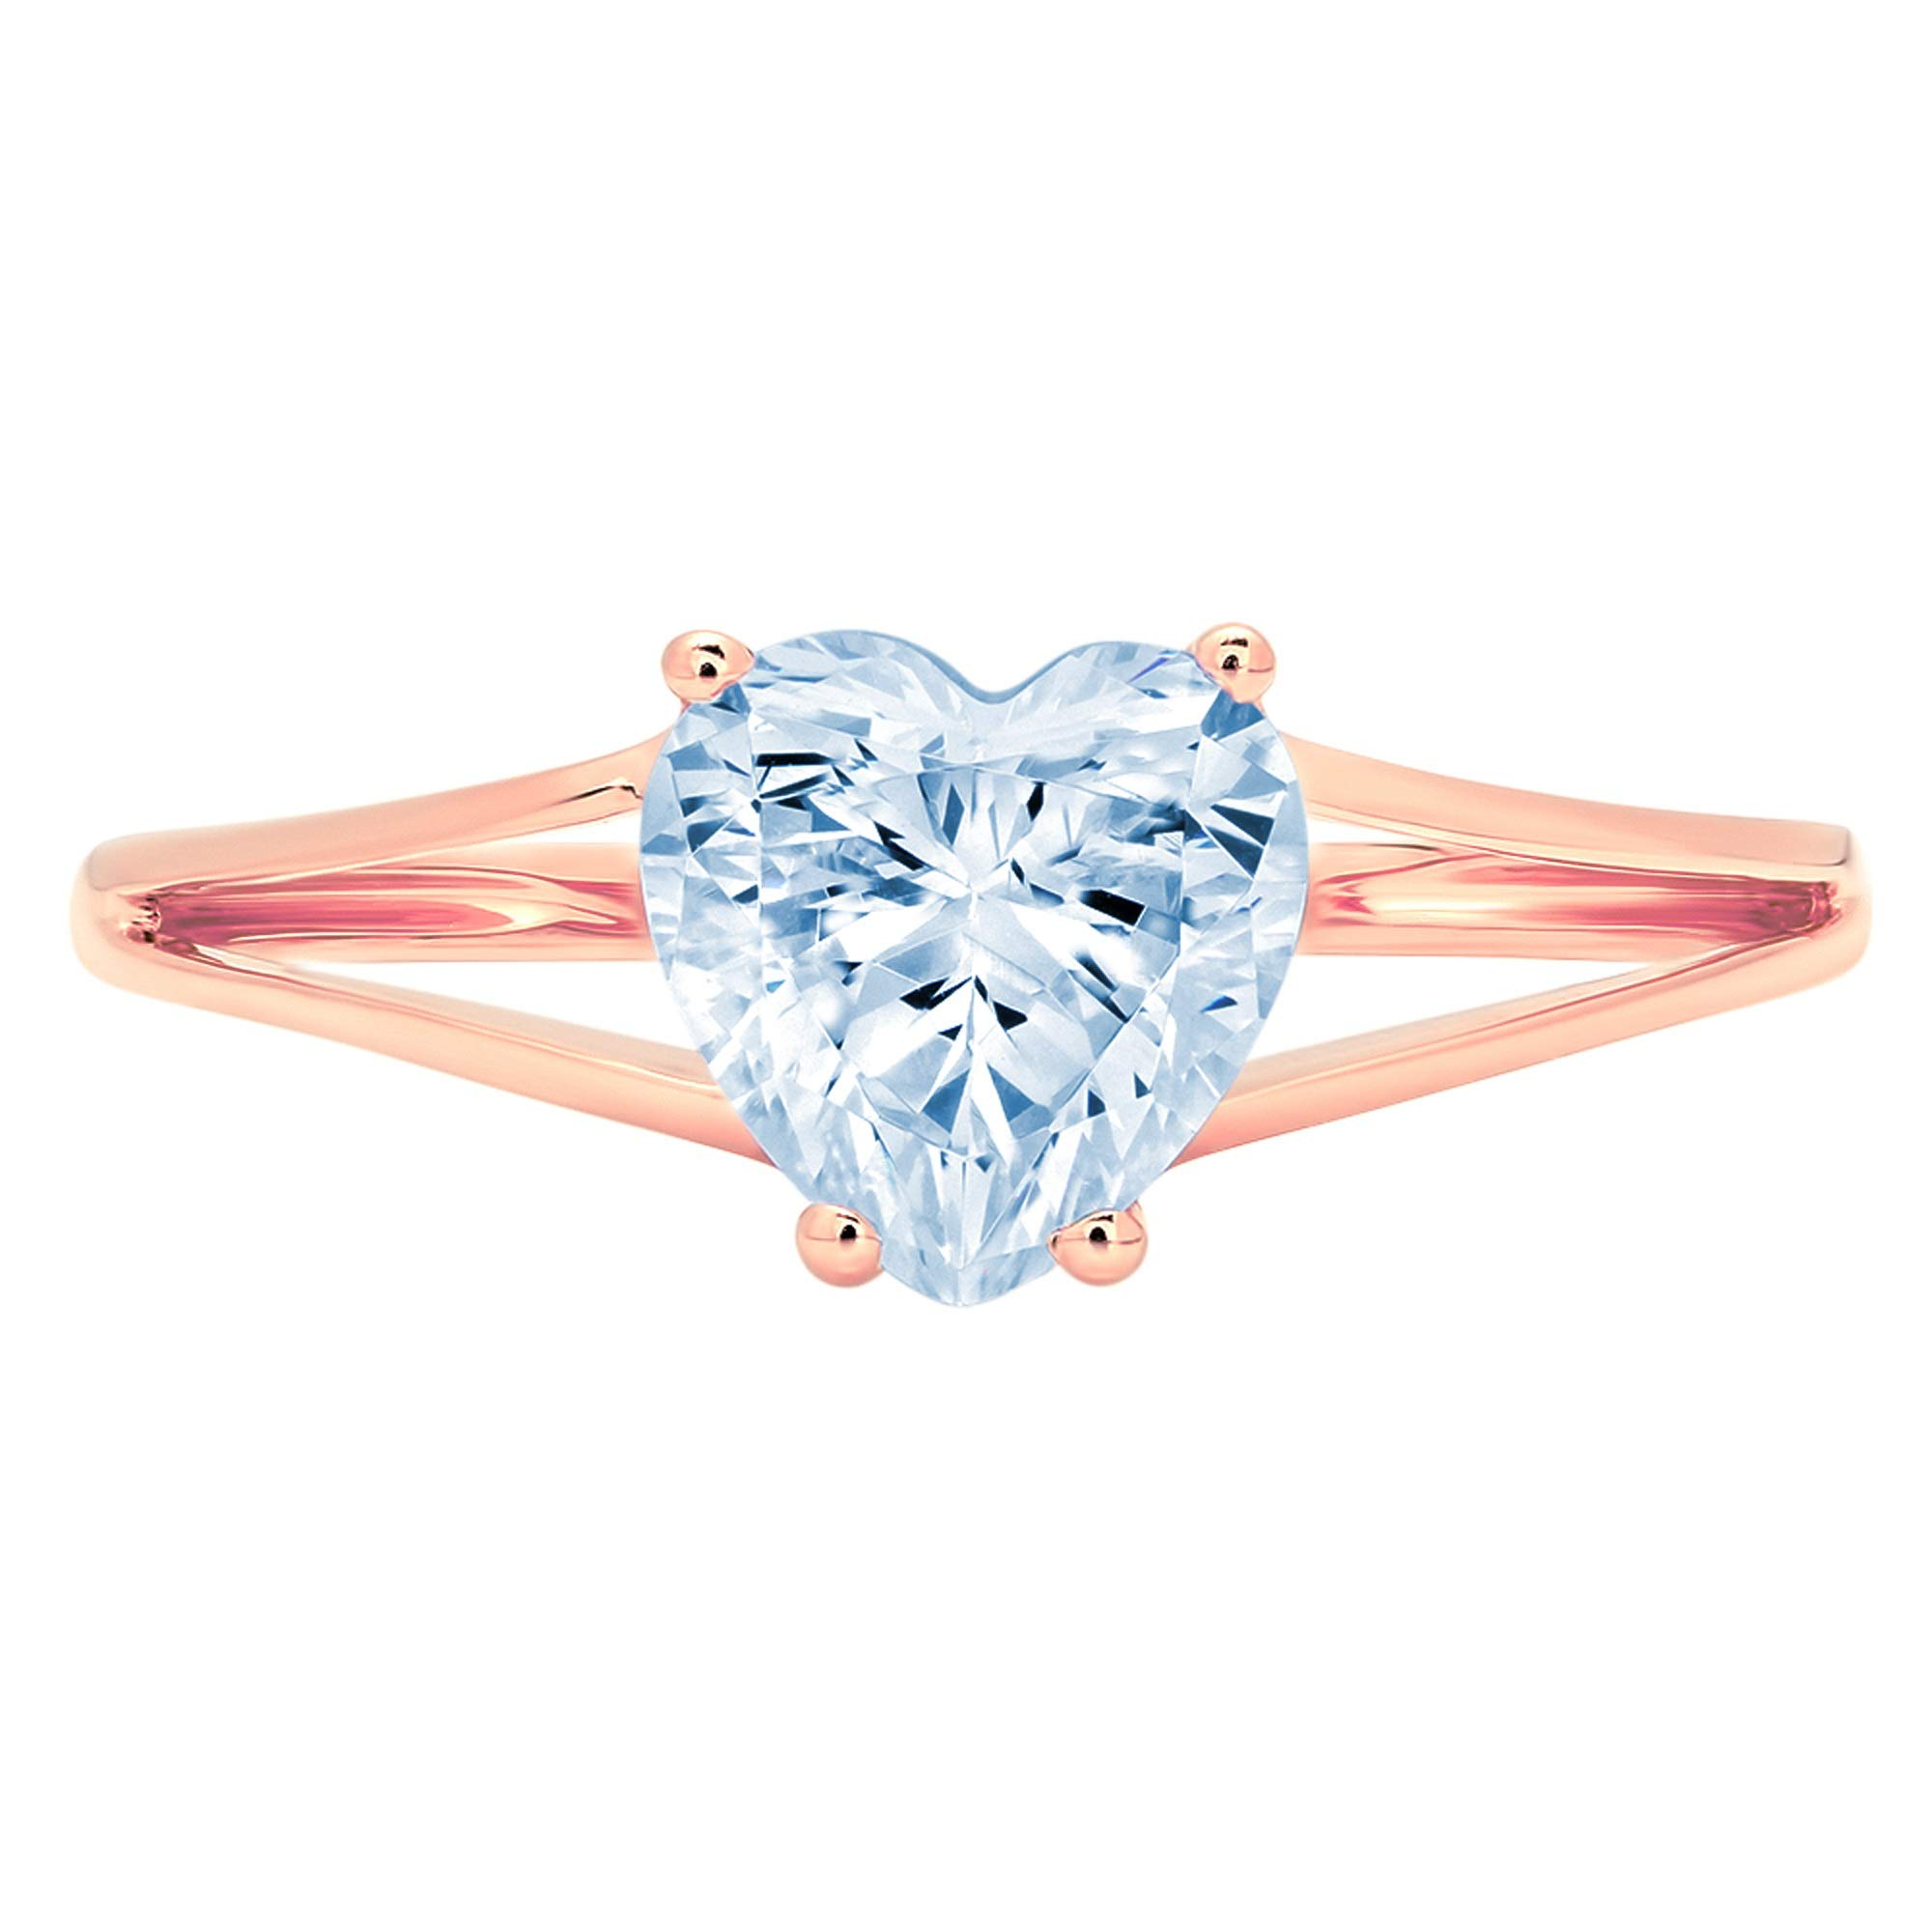 1.45ct Brilliant Heart Cut Solitaire split shank Natural Topaz Ideal VVS1 4-Prong Classic Designer Statement Ring Solid Real 14k Rose Gold for Women